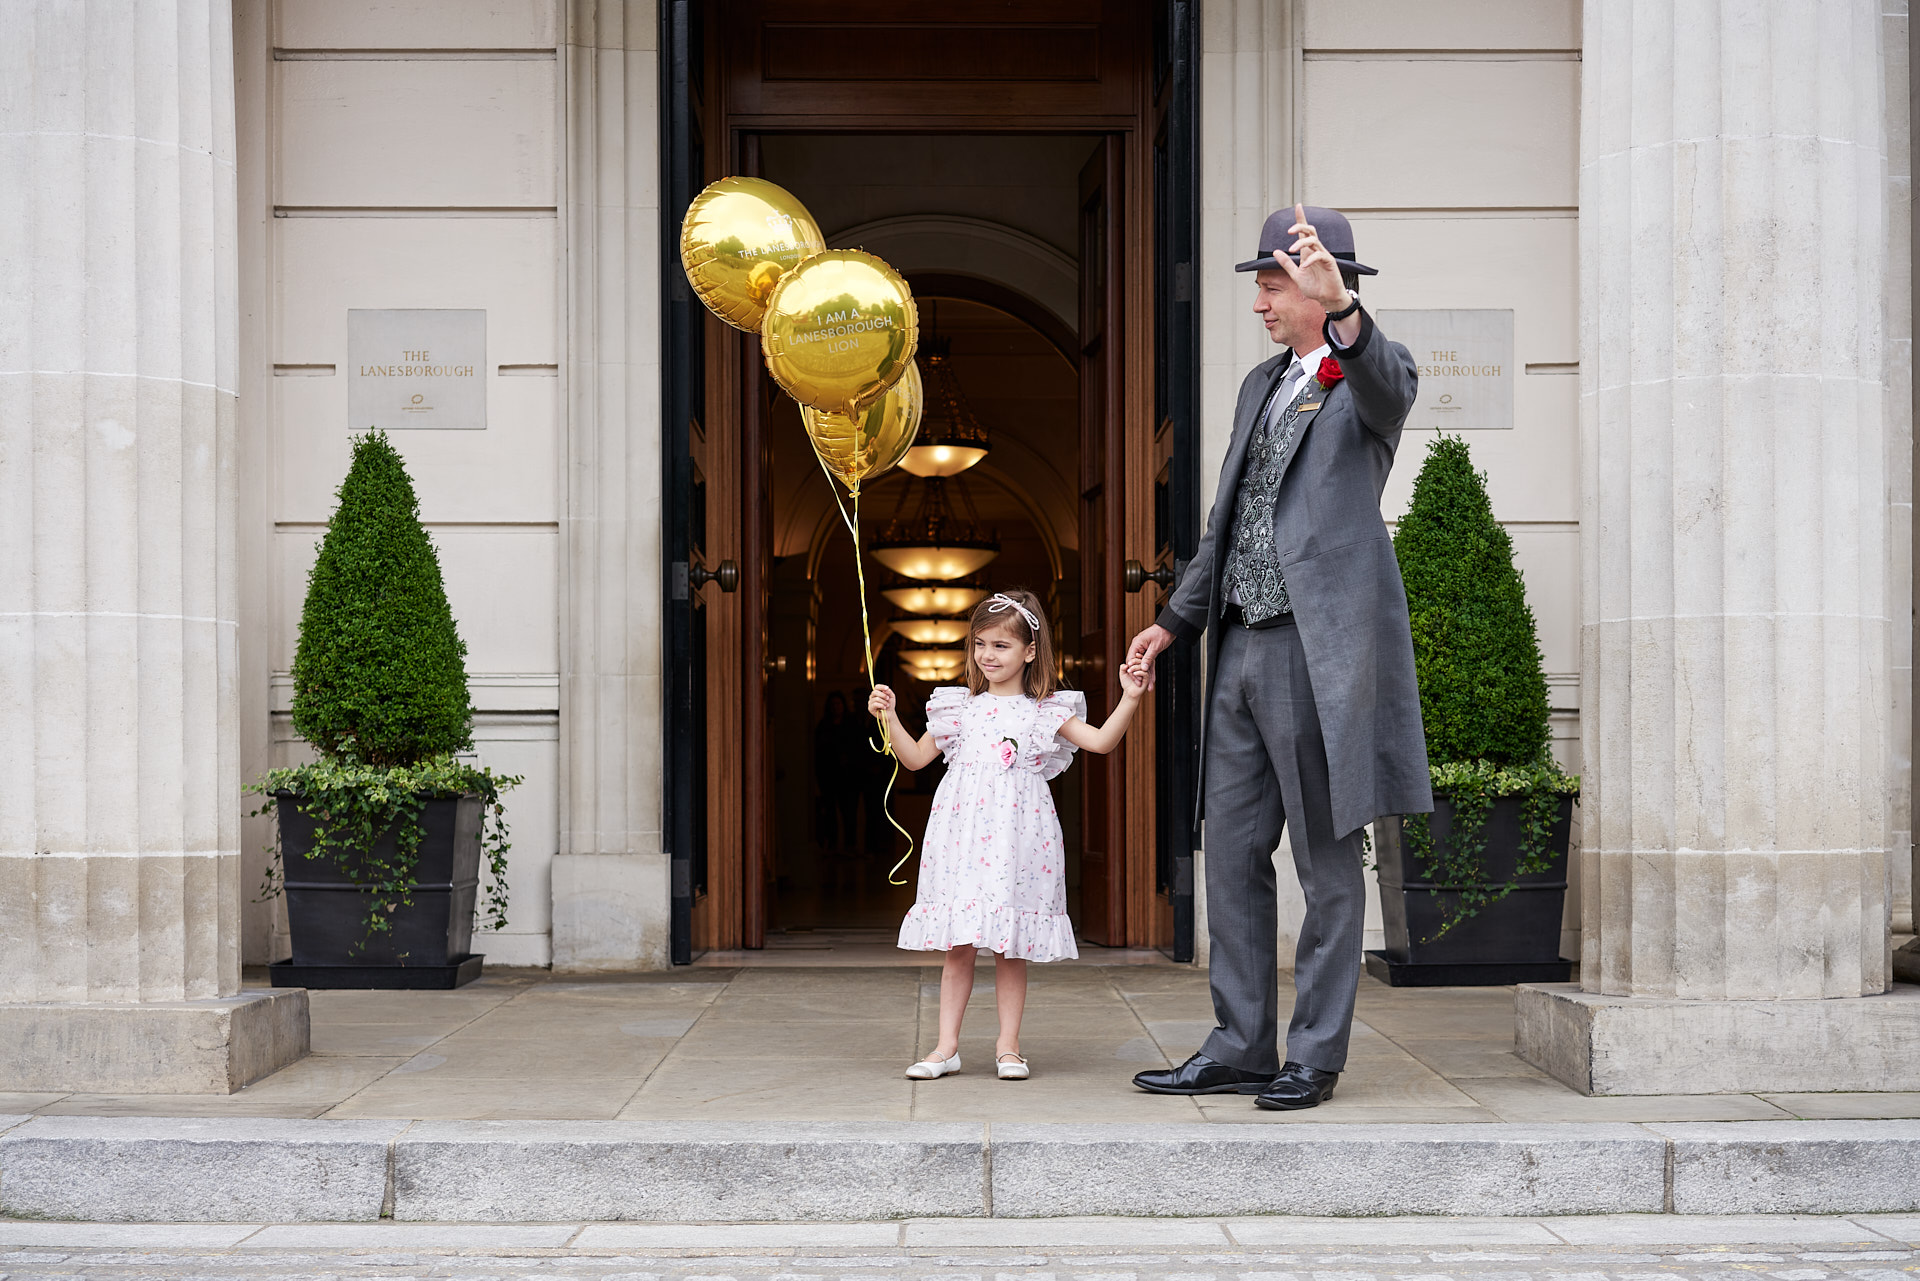 Children leaving The Lanesborough after a party